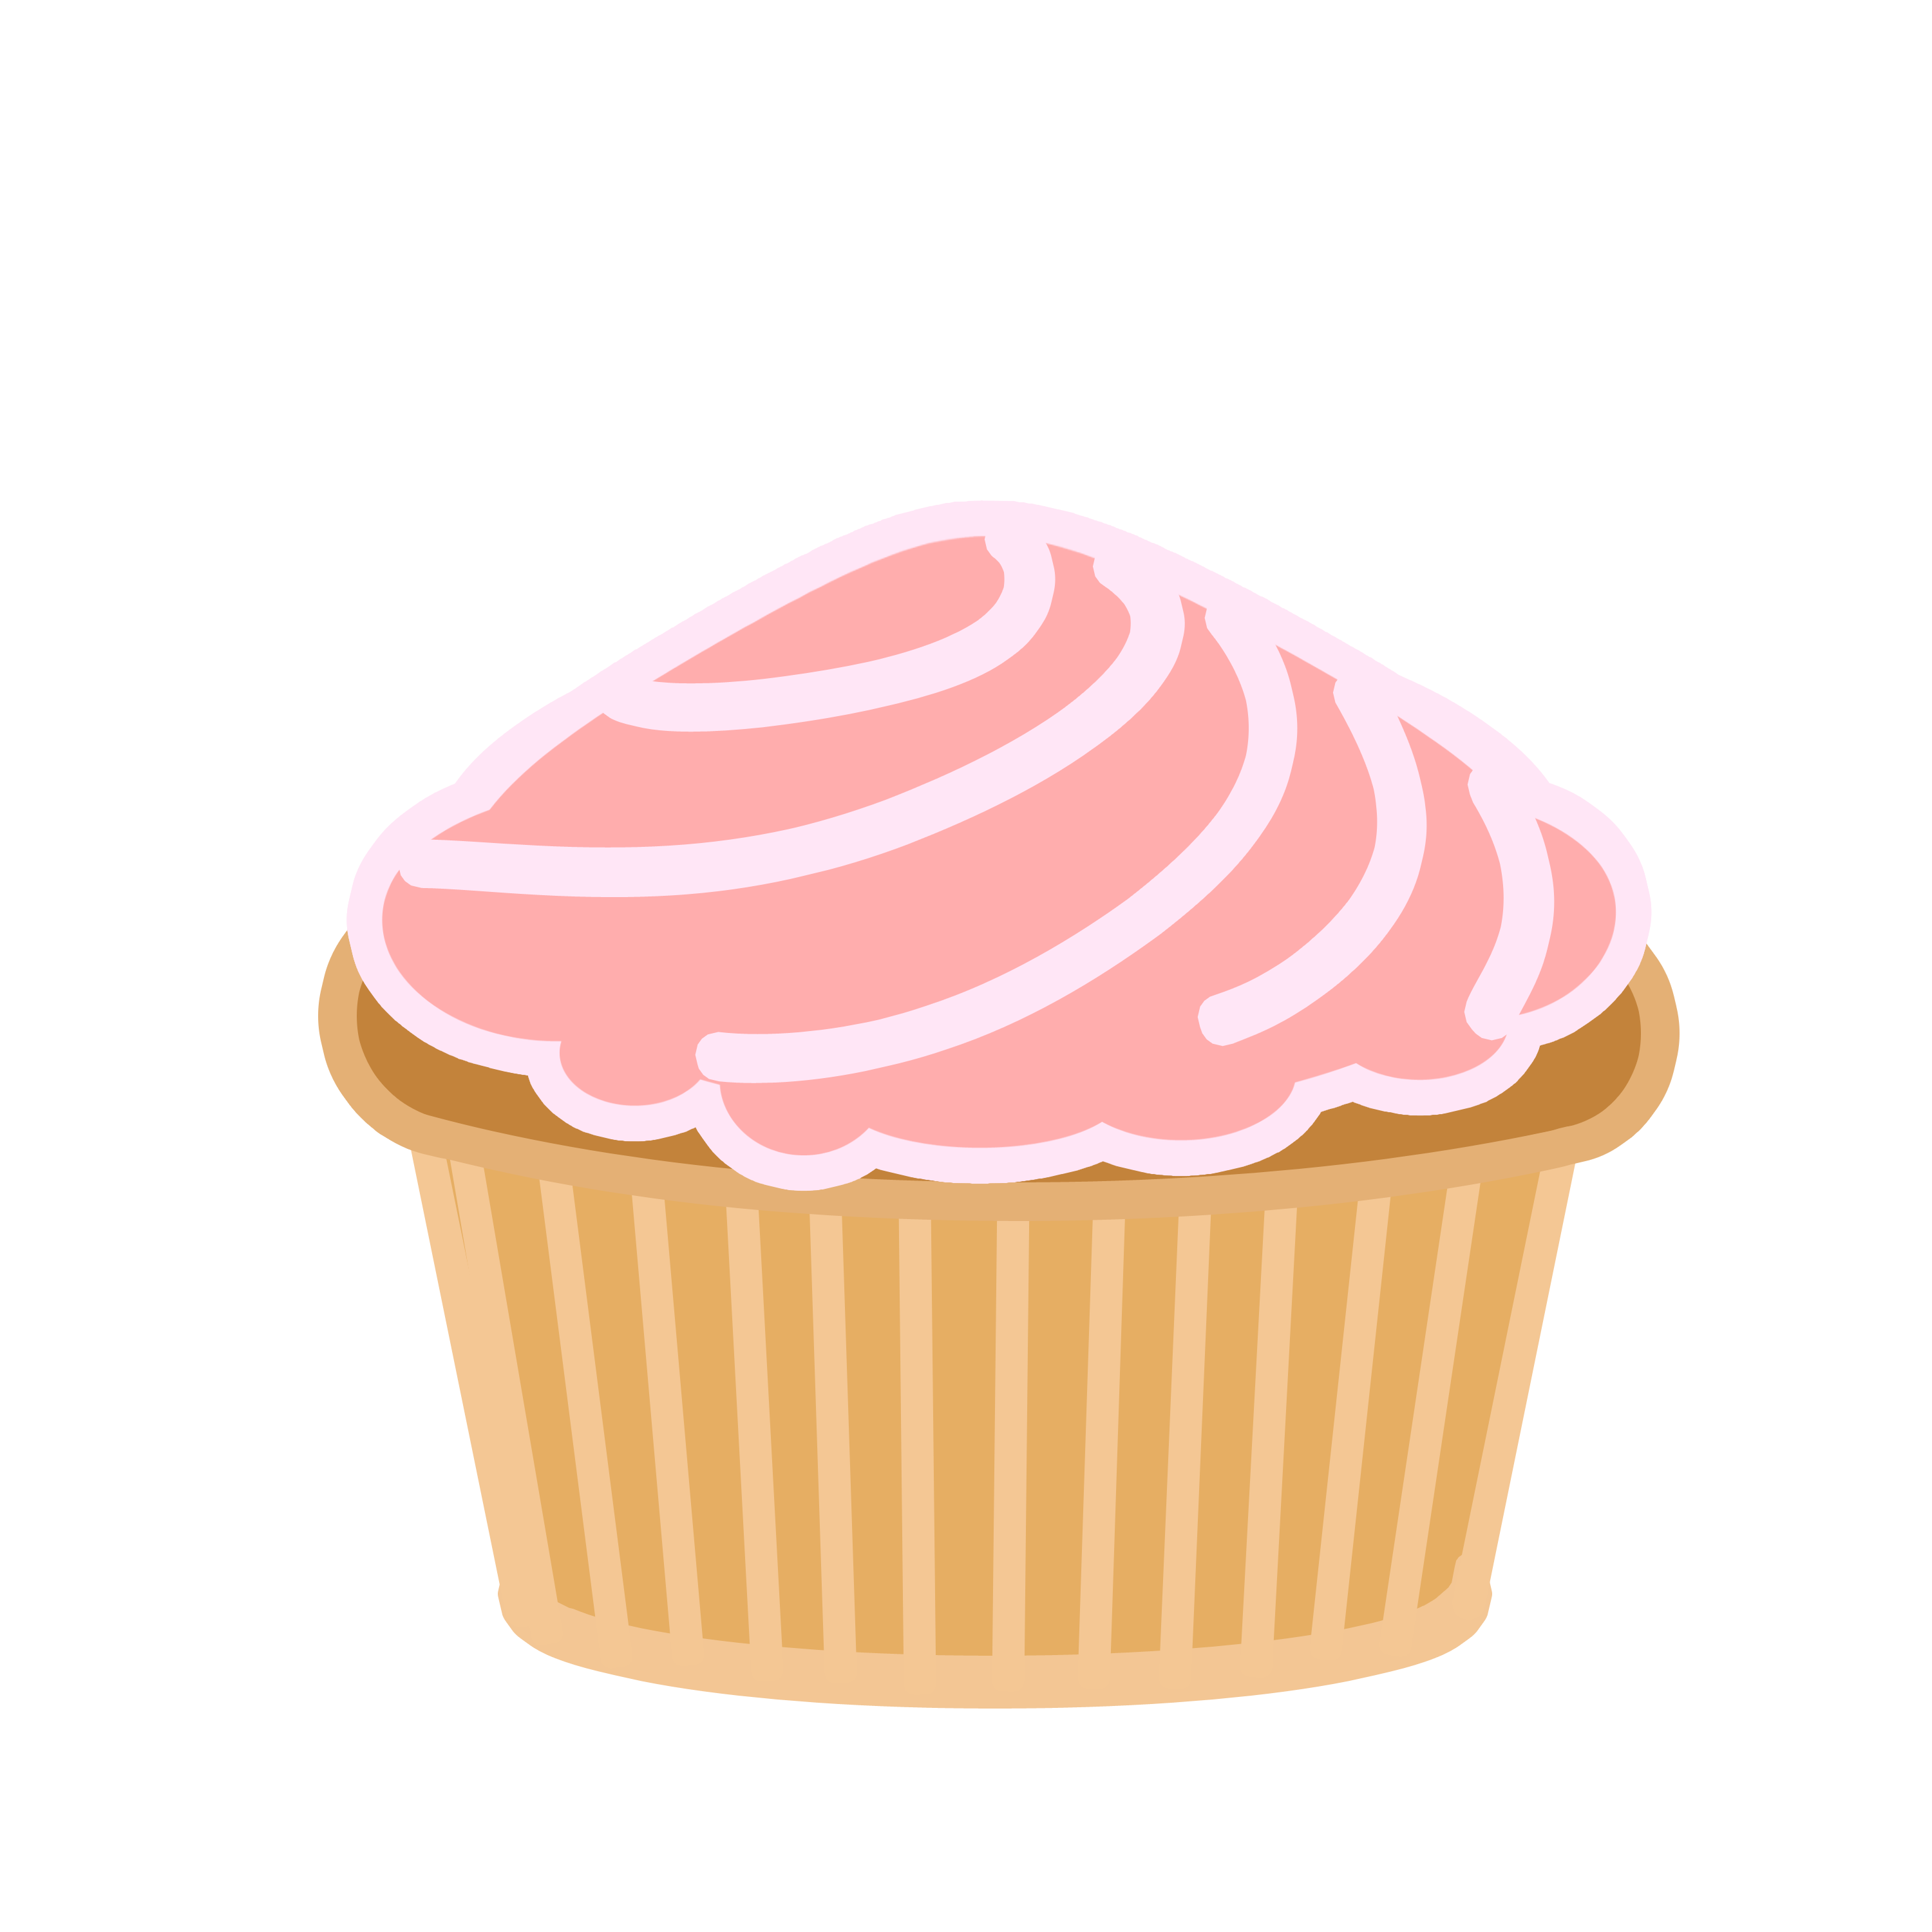 Cupcake with crown clipart clip freeuse library Cupcake Animation Group (41+) clip freeuse library